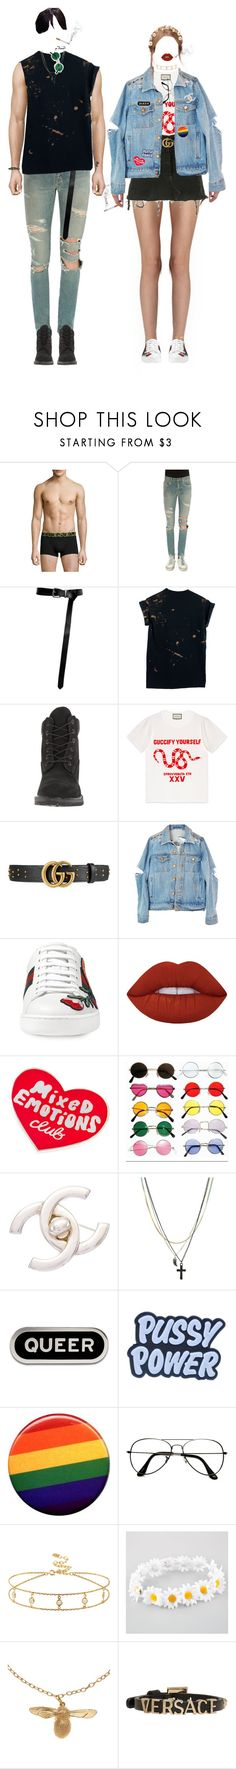 """""""-bf / gf look at a festival"""" by salt-sugar ❤ liked on Polyvore featuring Diesel, Yves Saint Laurent, Timberland, Gucci, Levi's, High Heels Suicide, Lime Crime, Tuesday Bassen, Chanel and ASOS"""